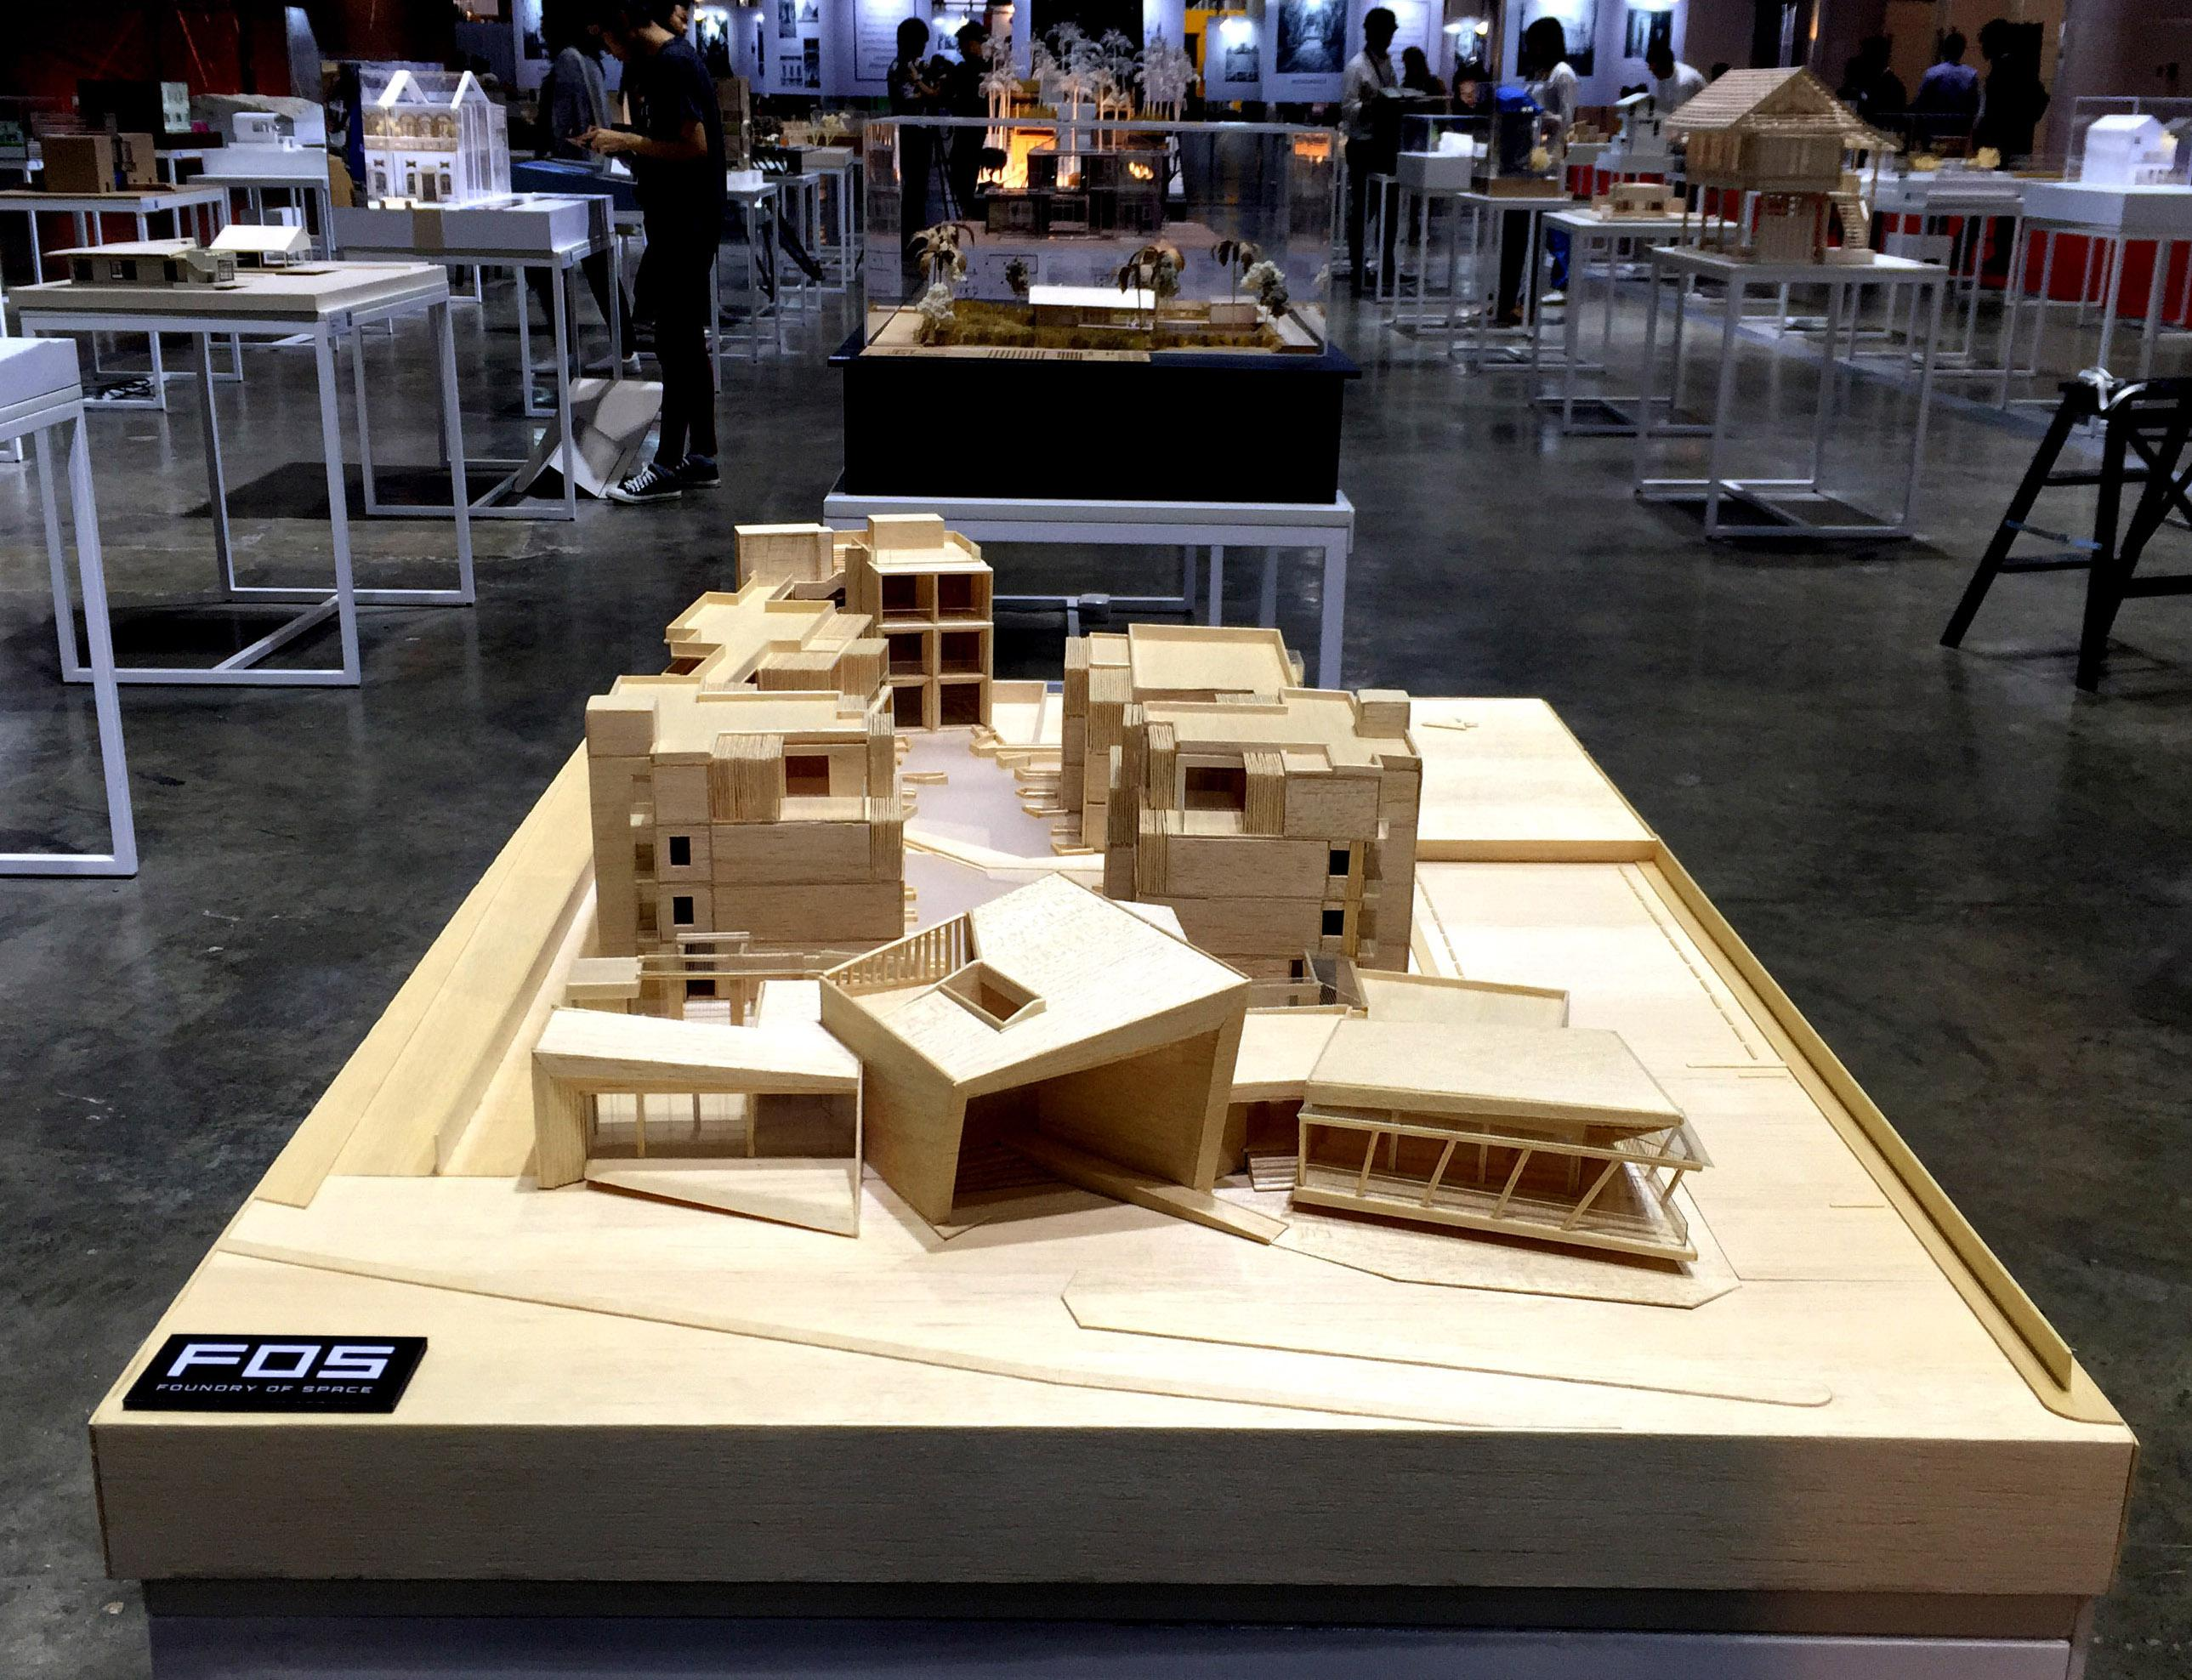 Canvas Resort project on show in Architect '17 Expo